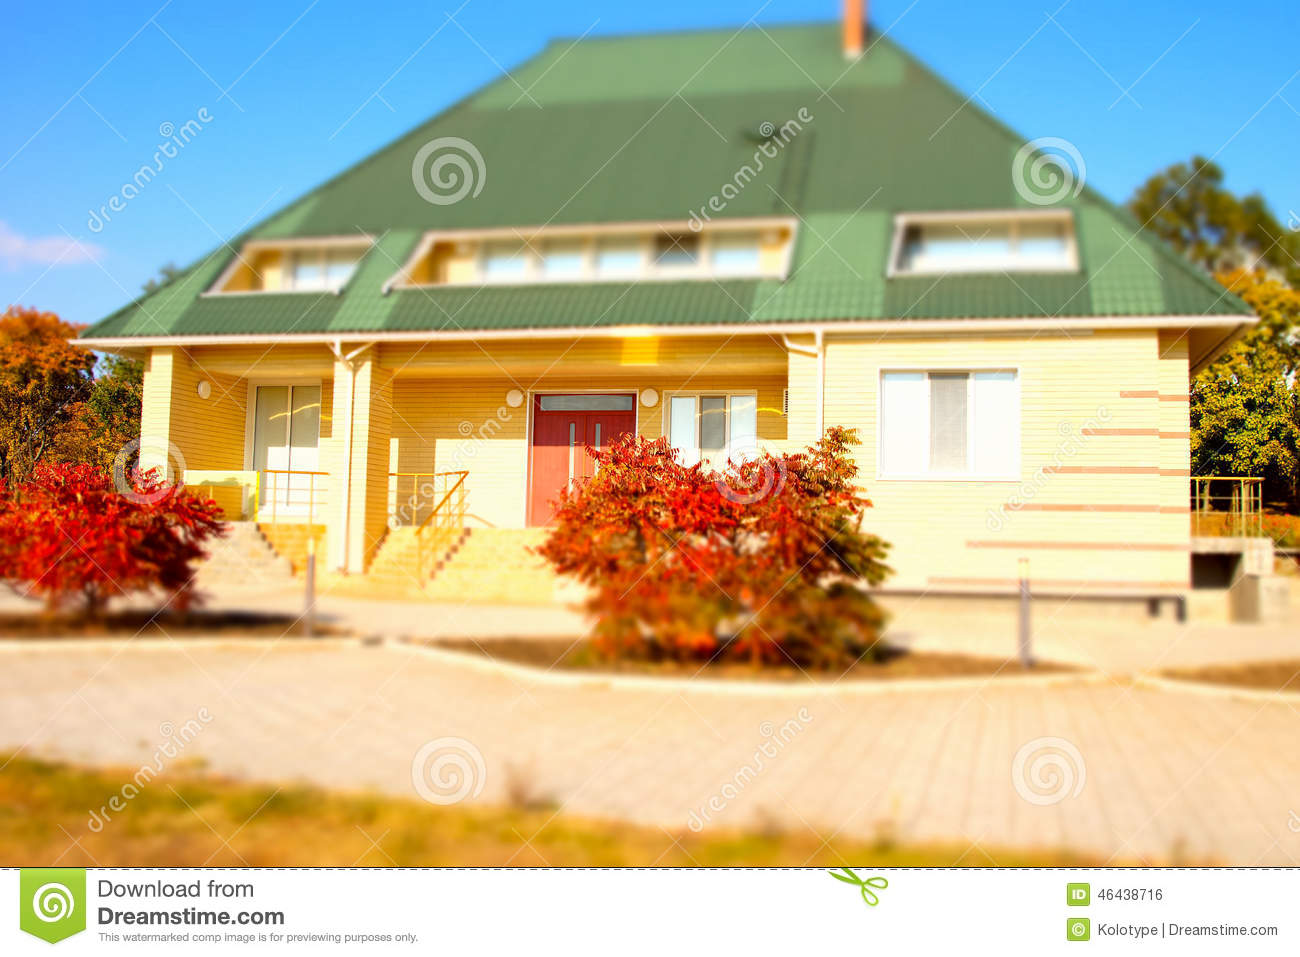 architectural bungalow house exterior design stock photo